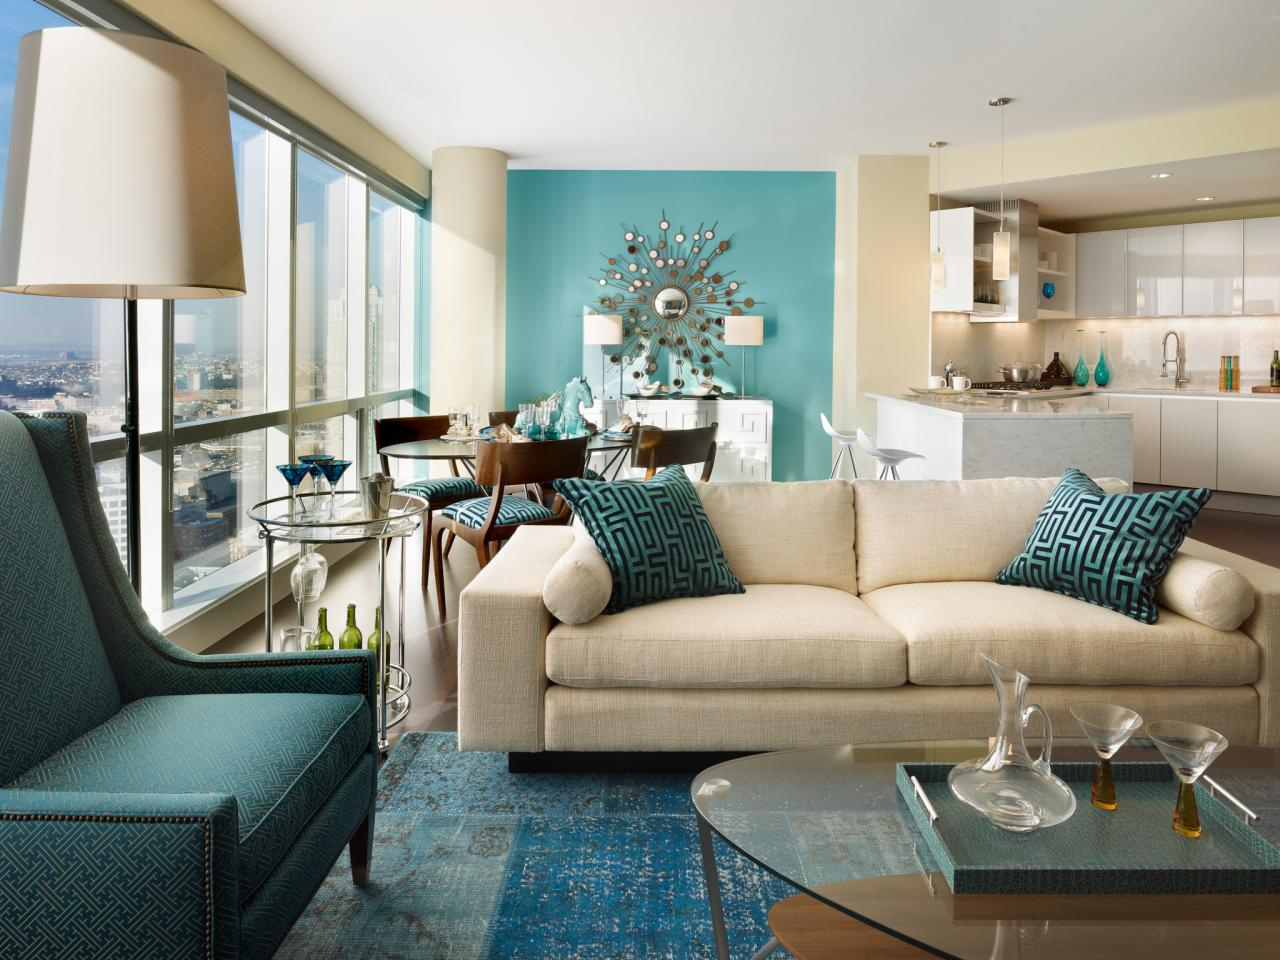 Modern Living Room Blue fresh and pastel: style your living room in mint hues